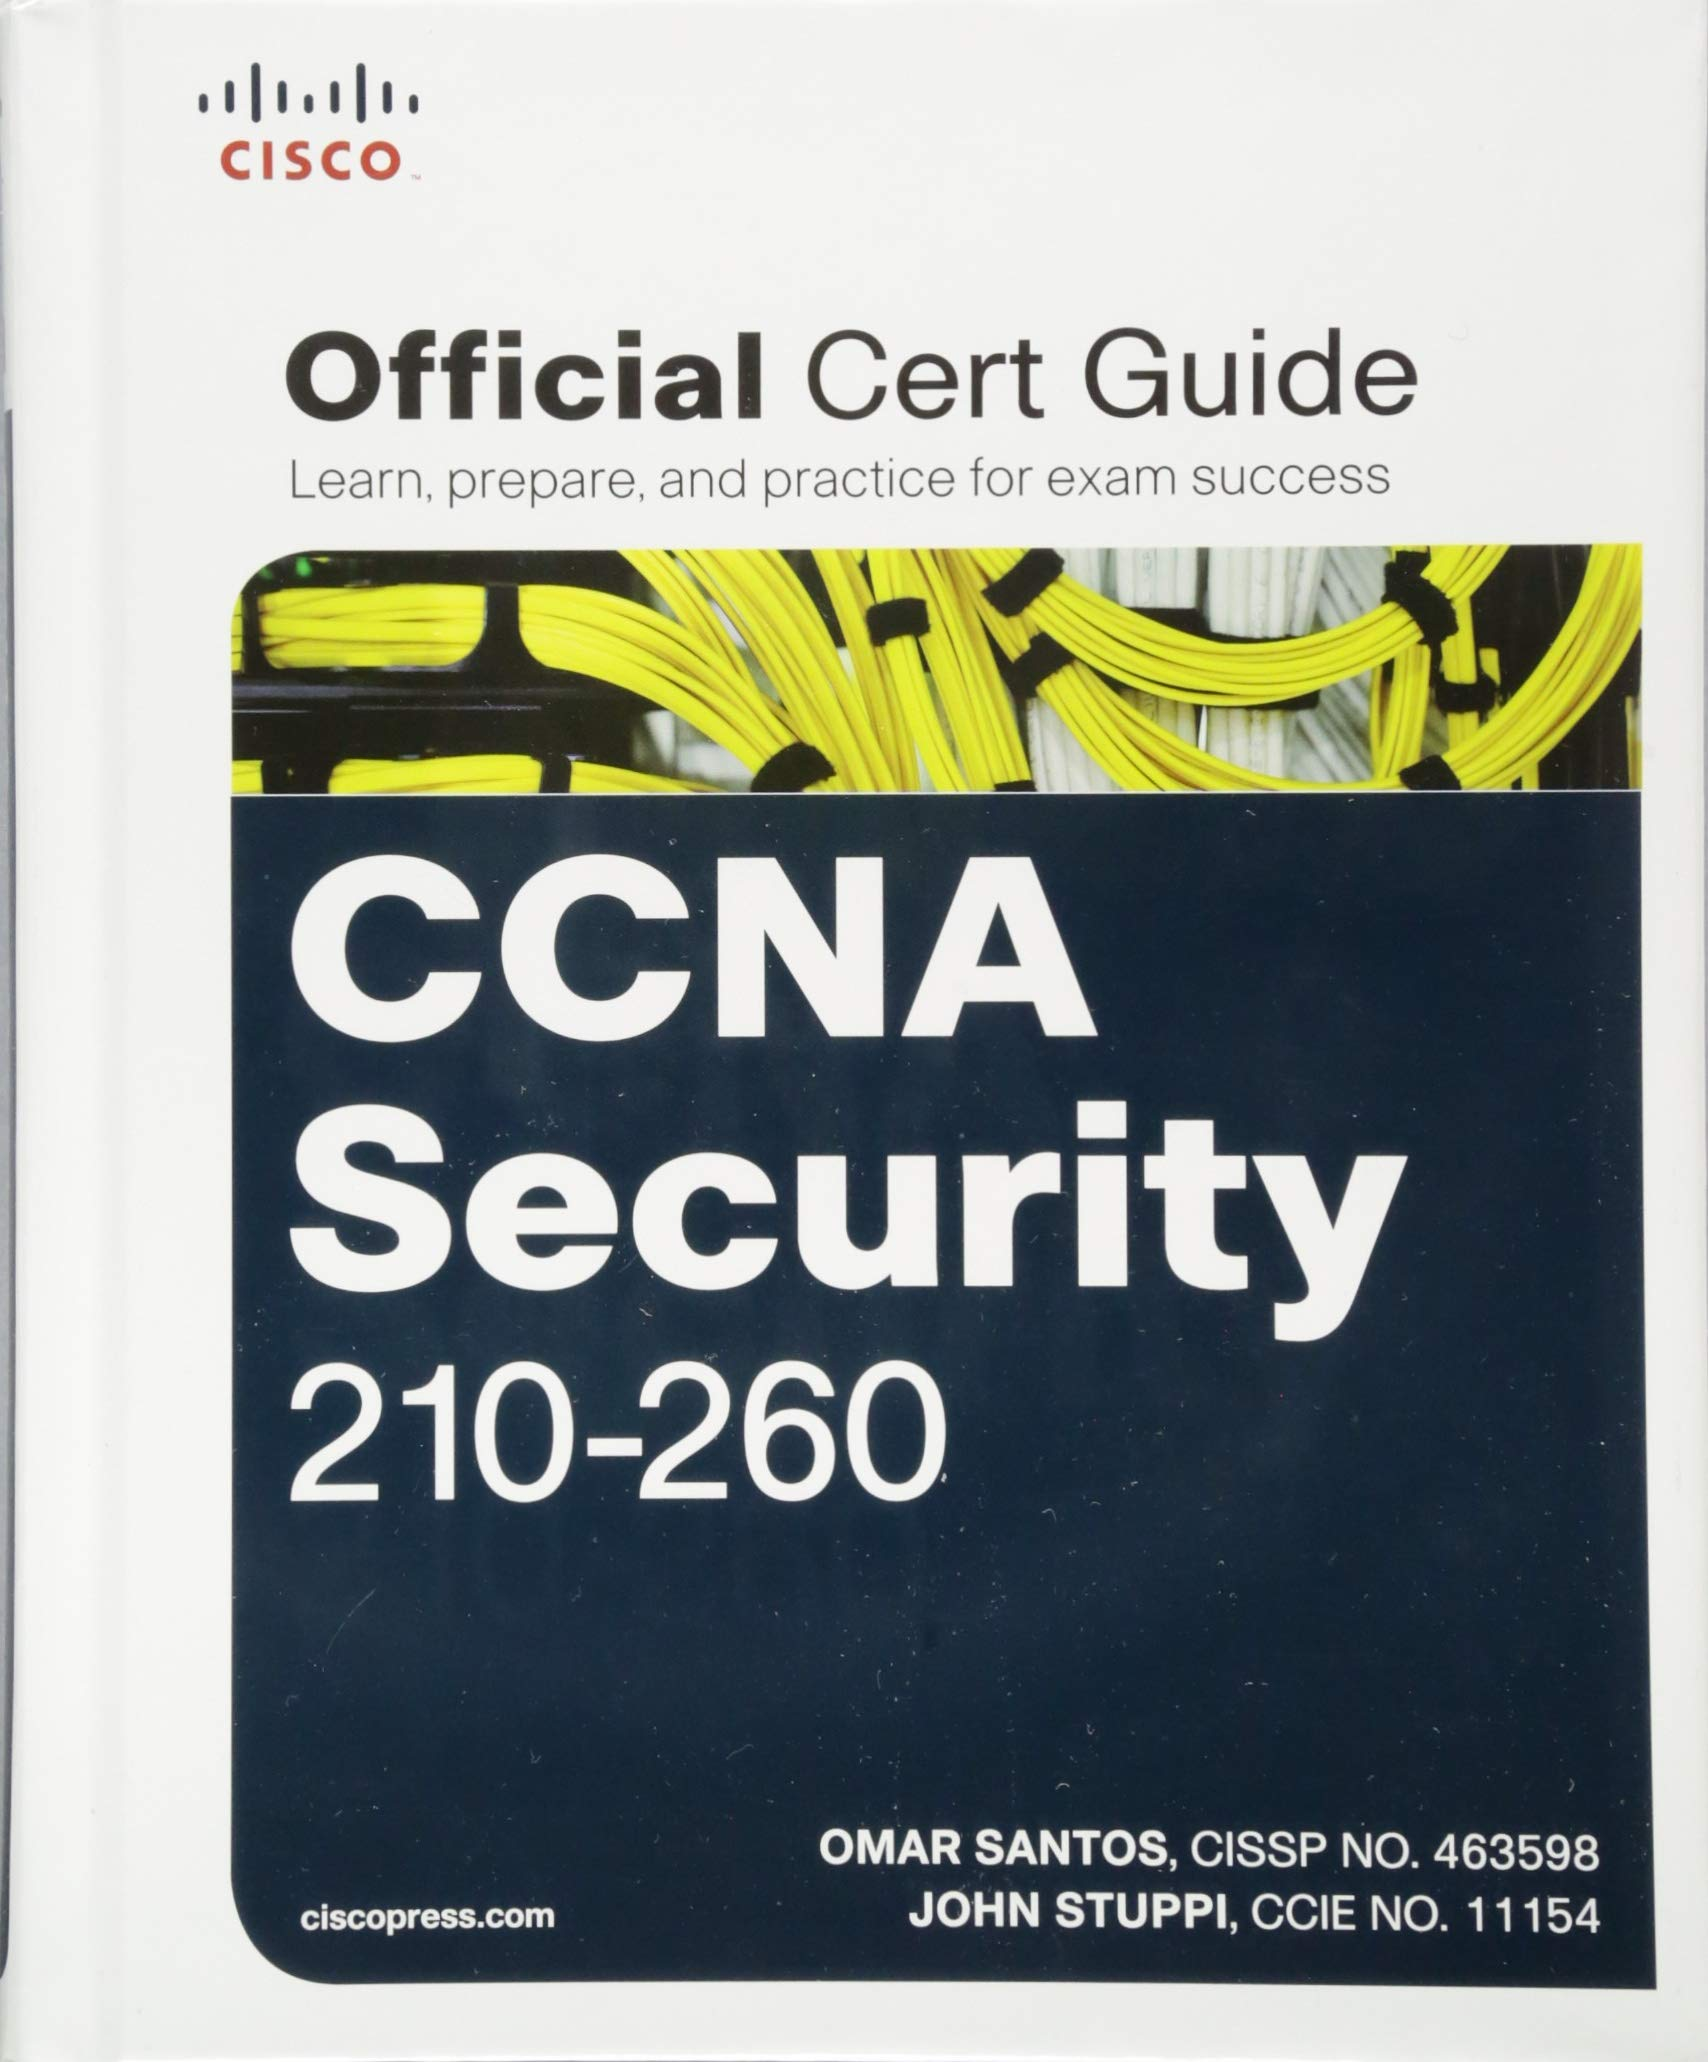 CCNA Security 210-260 Official Cert Guide: Amazon.es: Omar Santos, John Stuppi: Libros en idiomas extranjeros